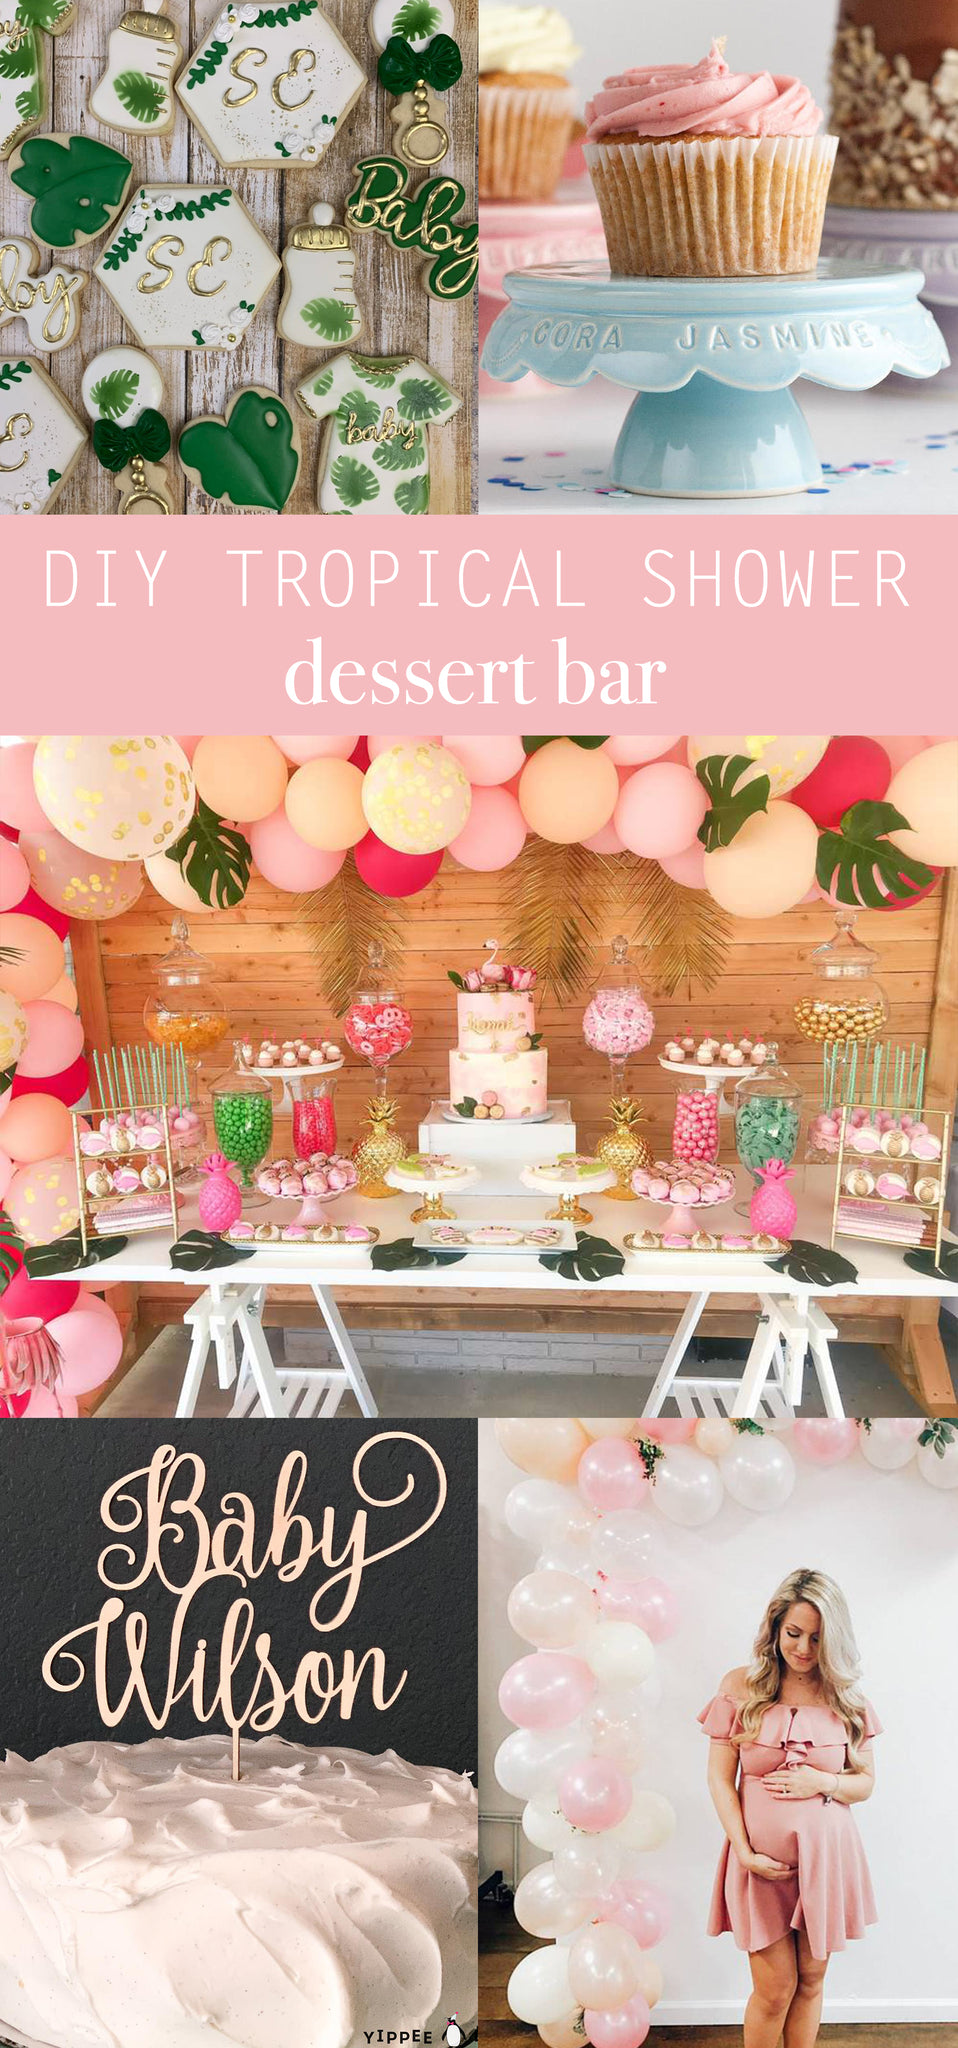 Tropical Baby Shower Decor - Hawaiian Luau Baby Shower Dessert Bar - Pretty Collected